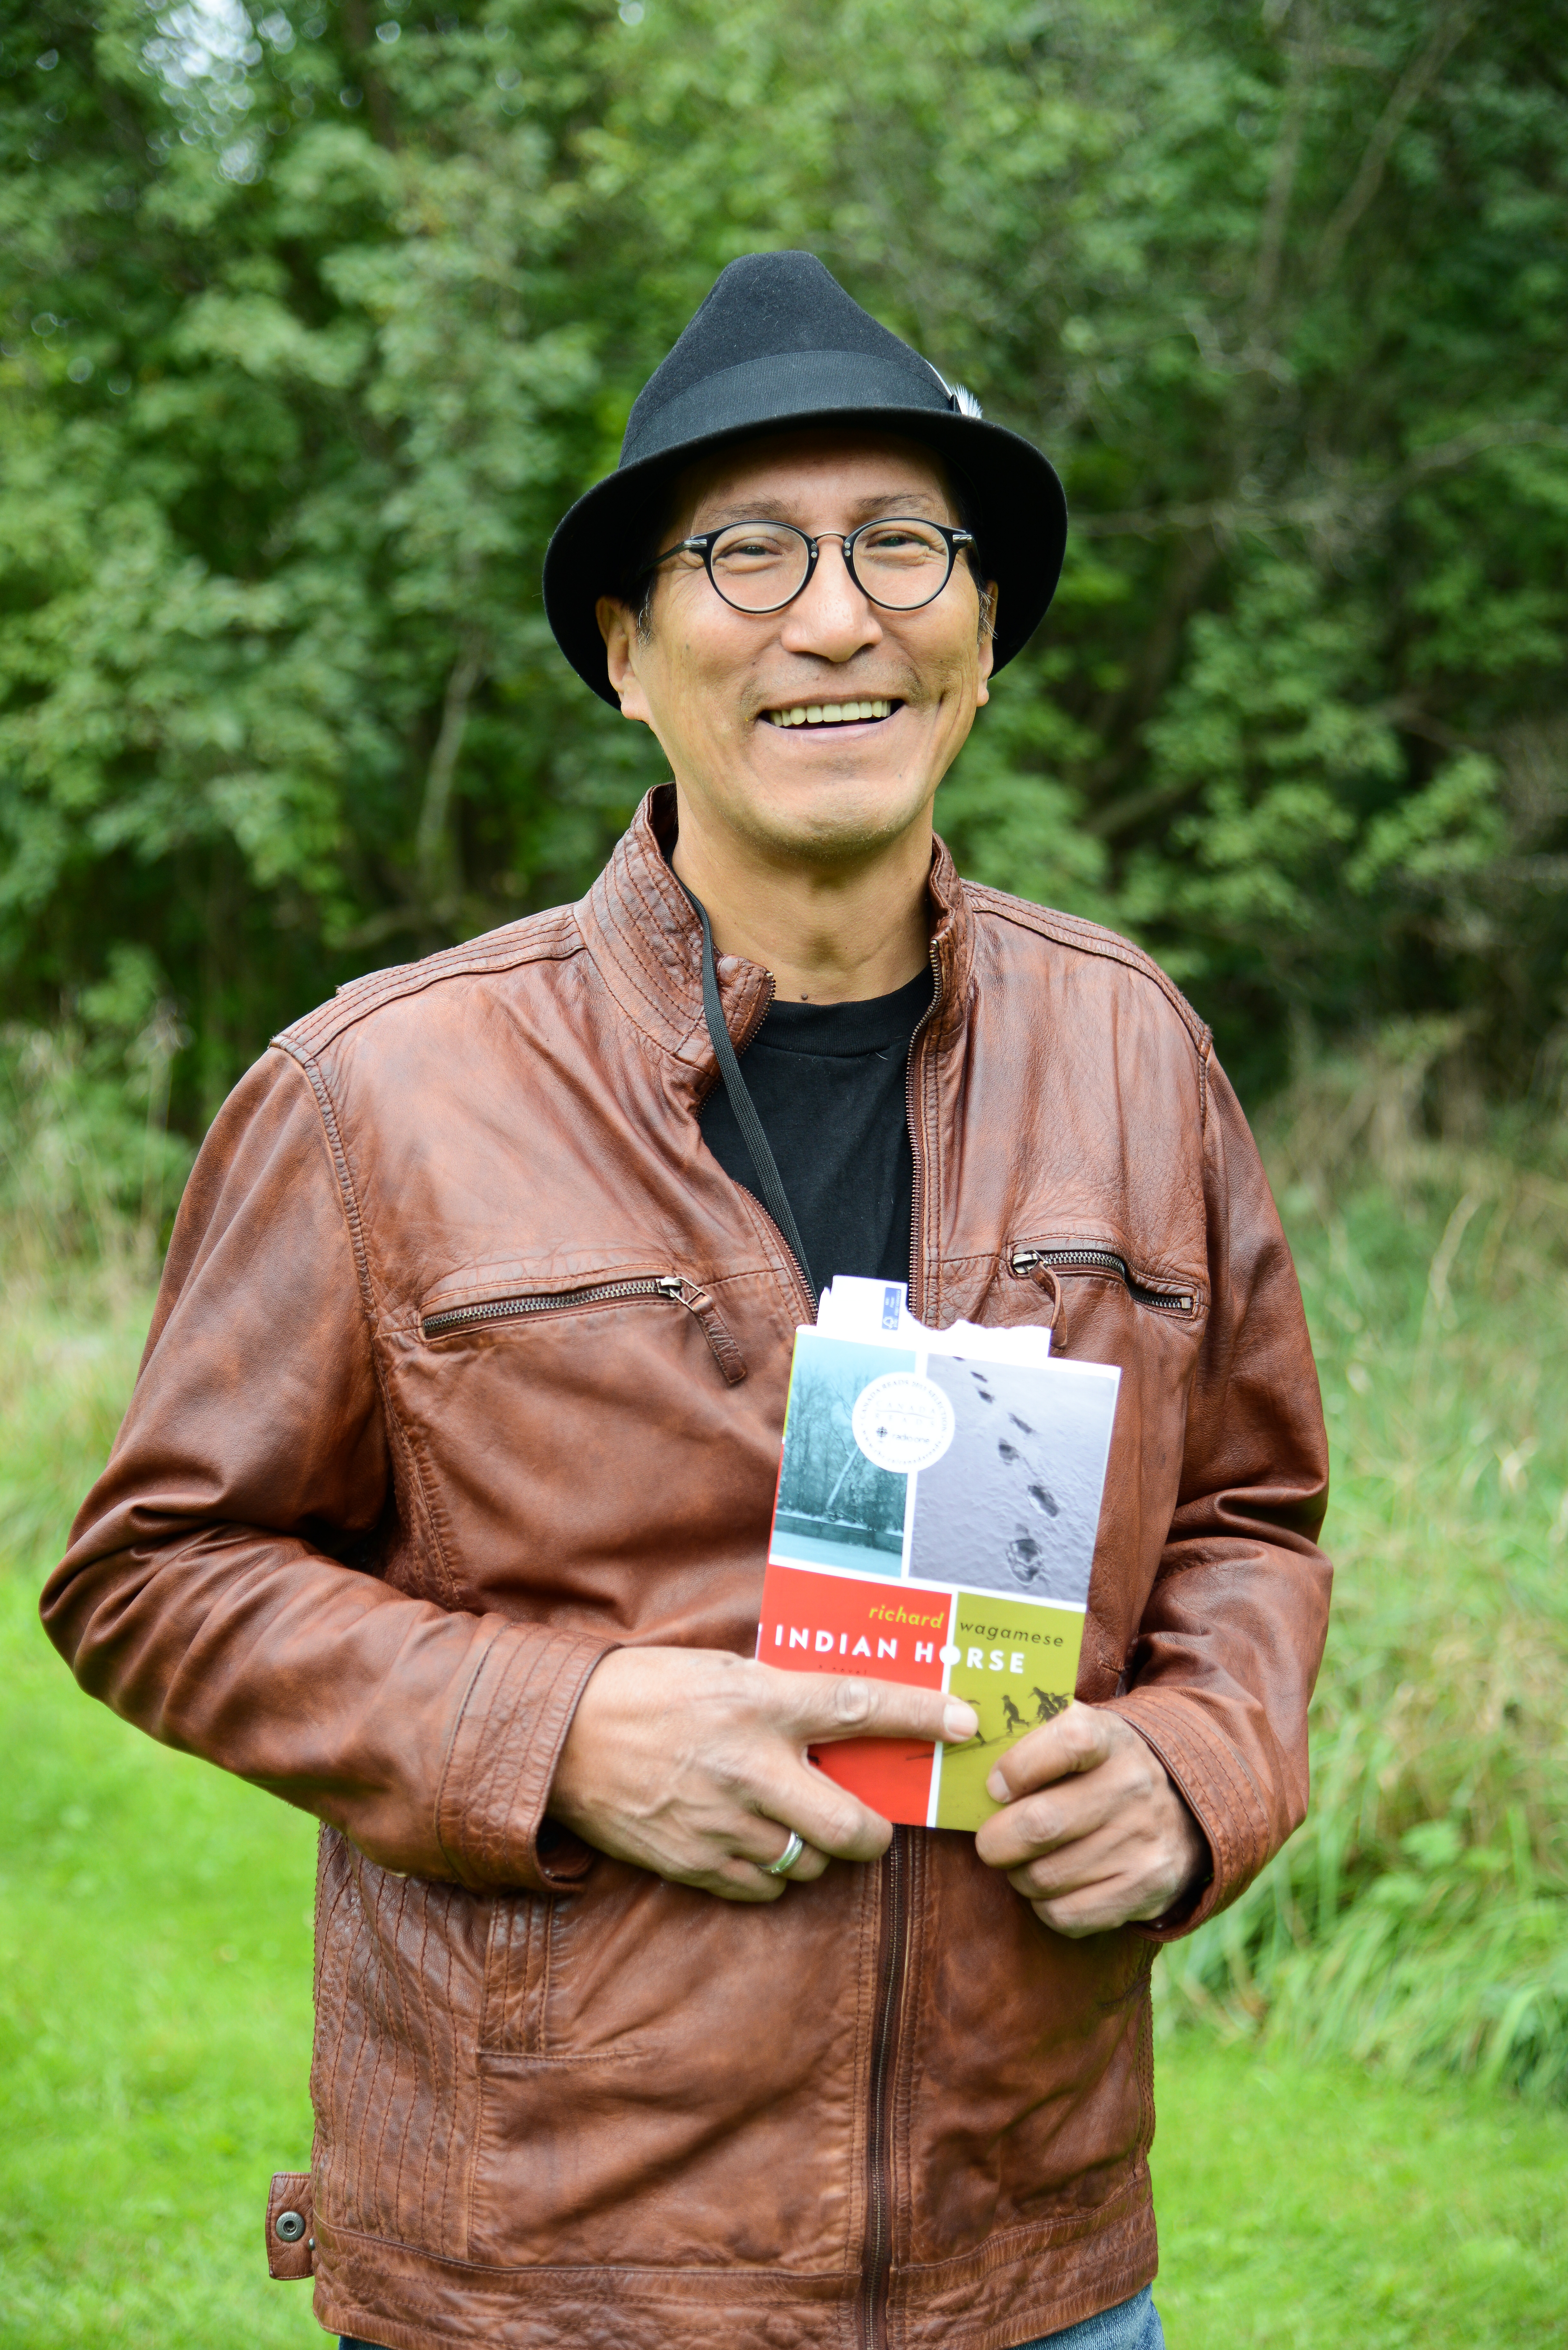 Wagamese at the [[Eden Mills Writers' Festival]] in 2013